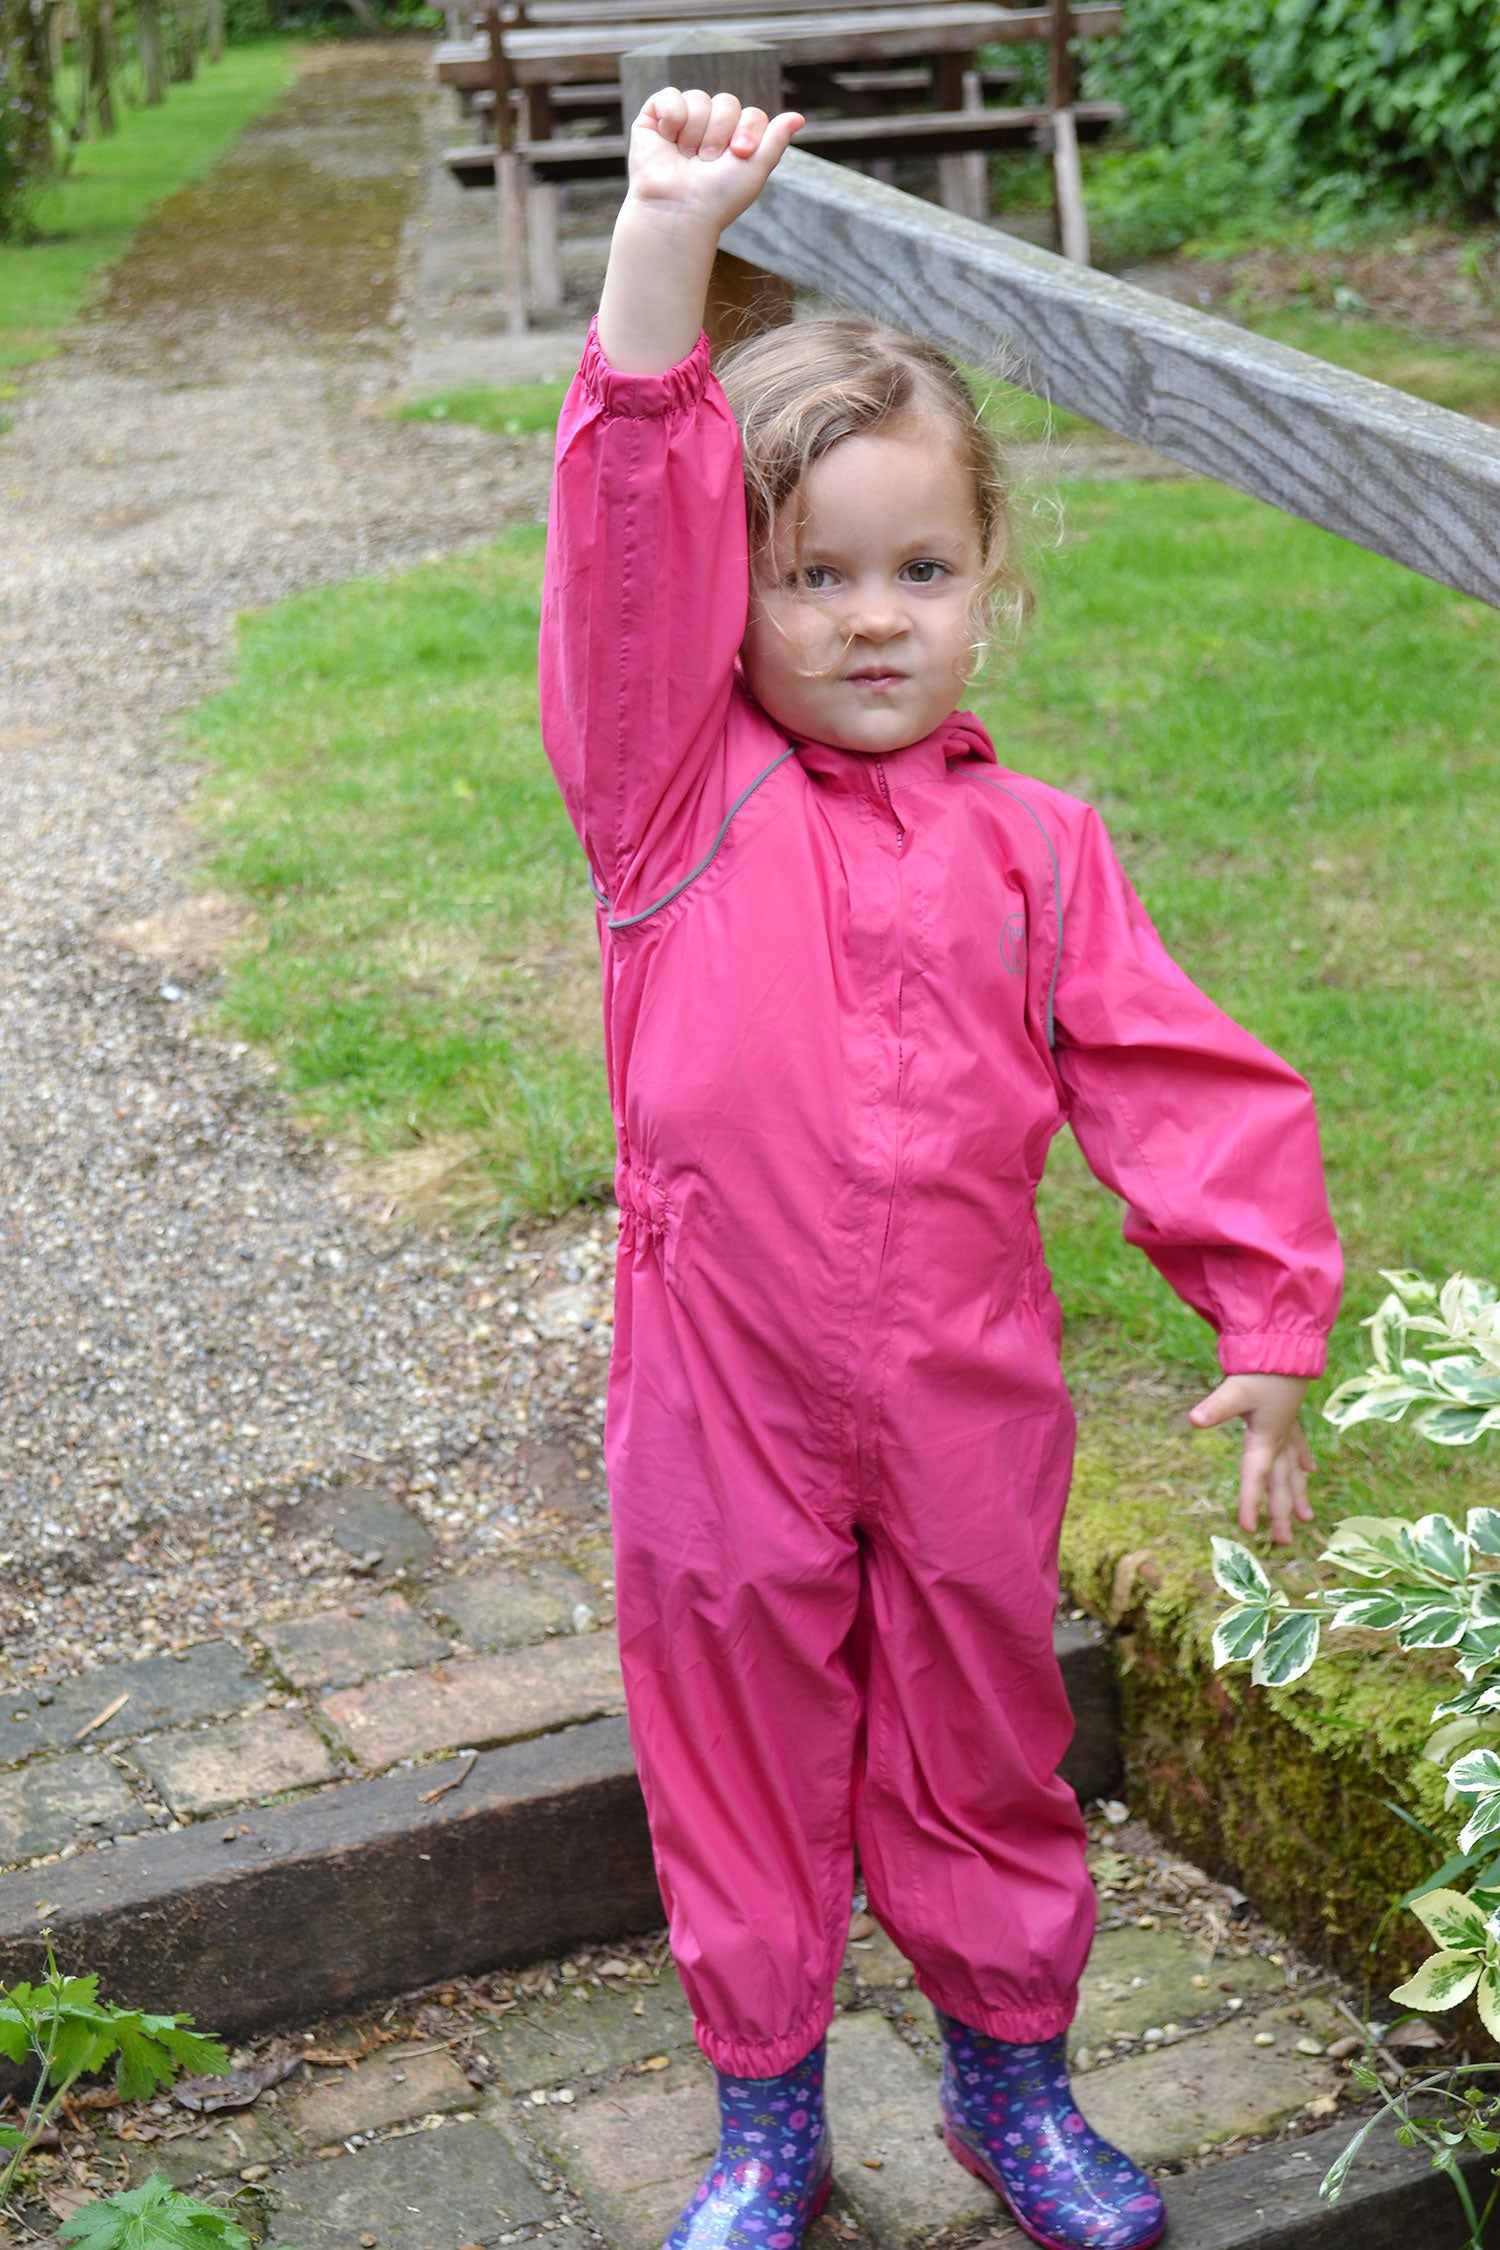 Girl in Pink rainsuit and wellies